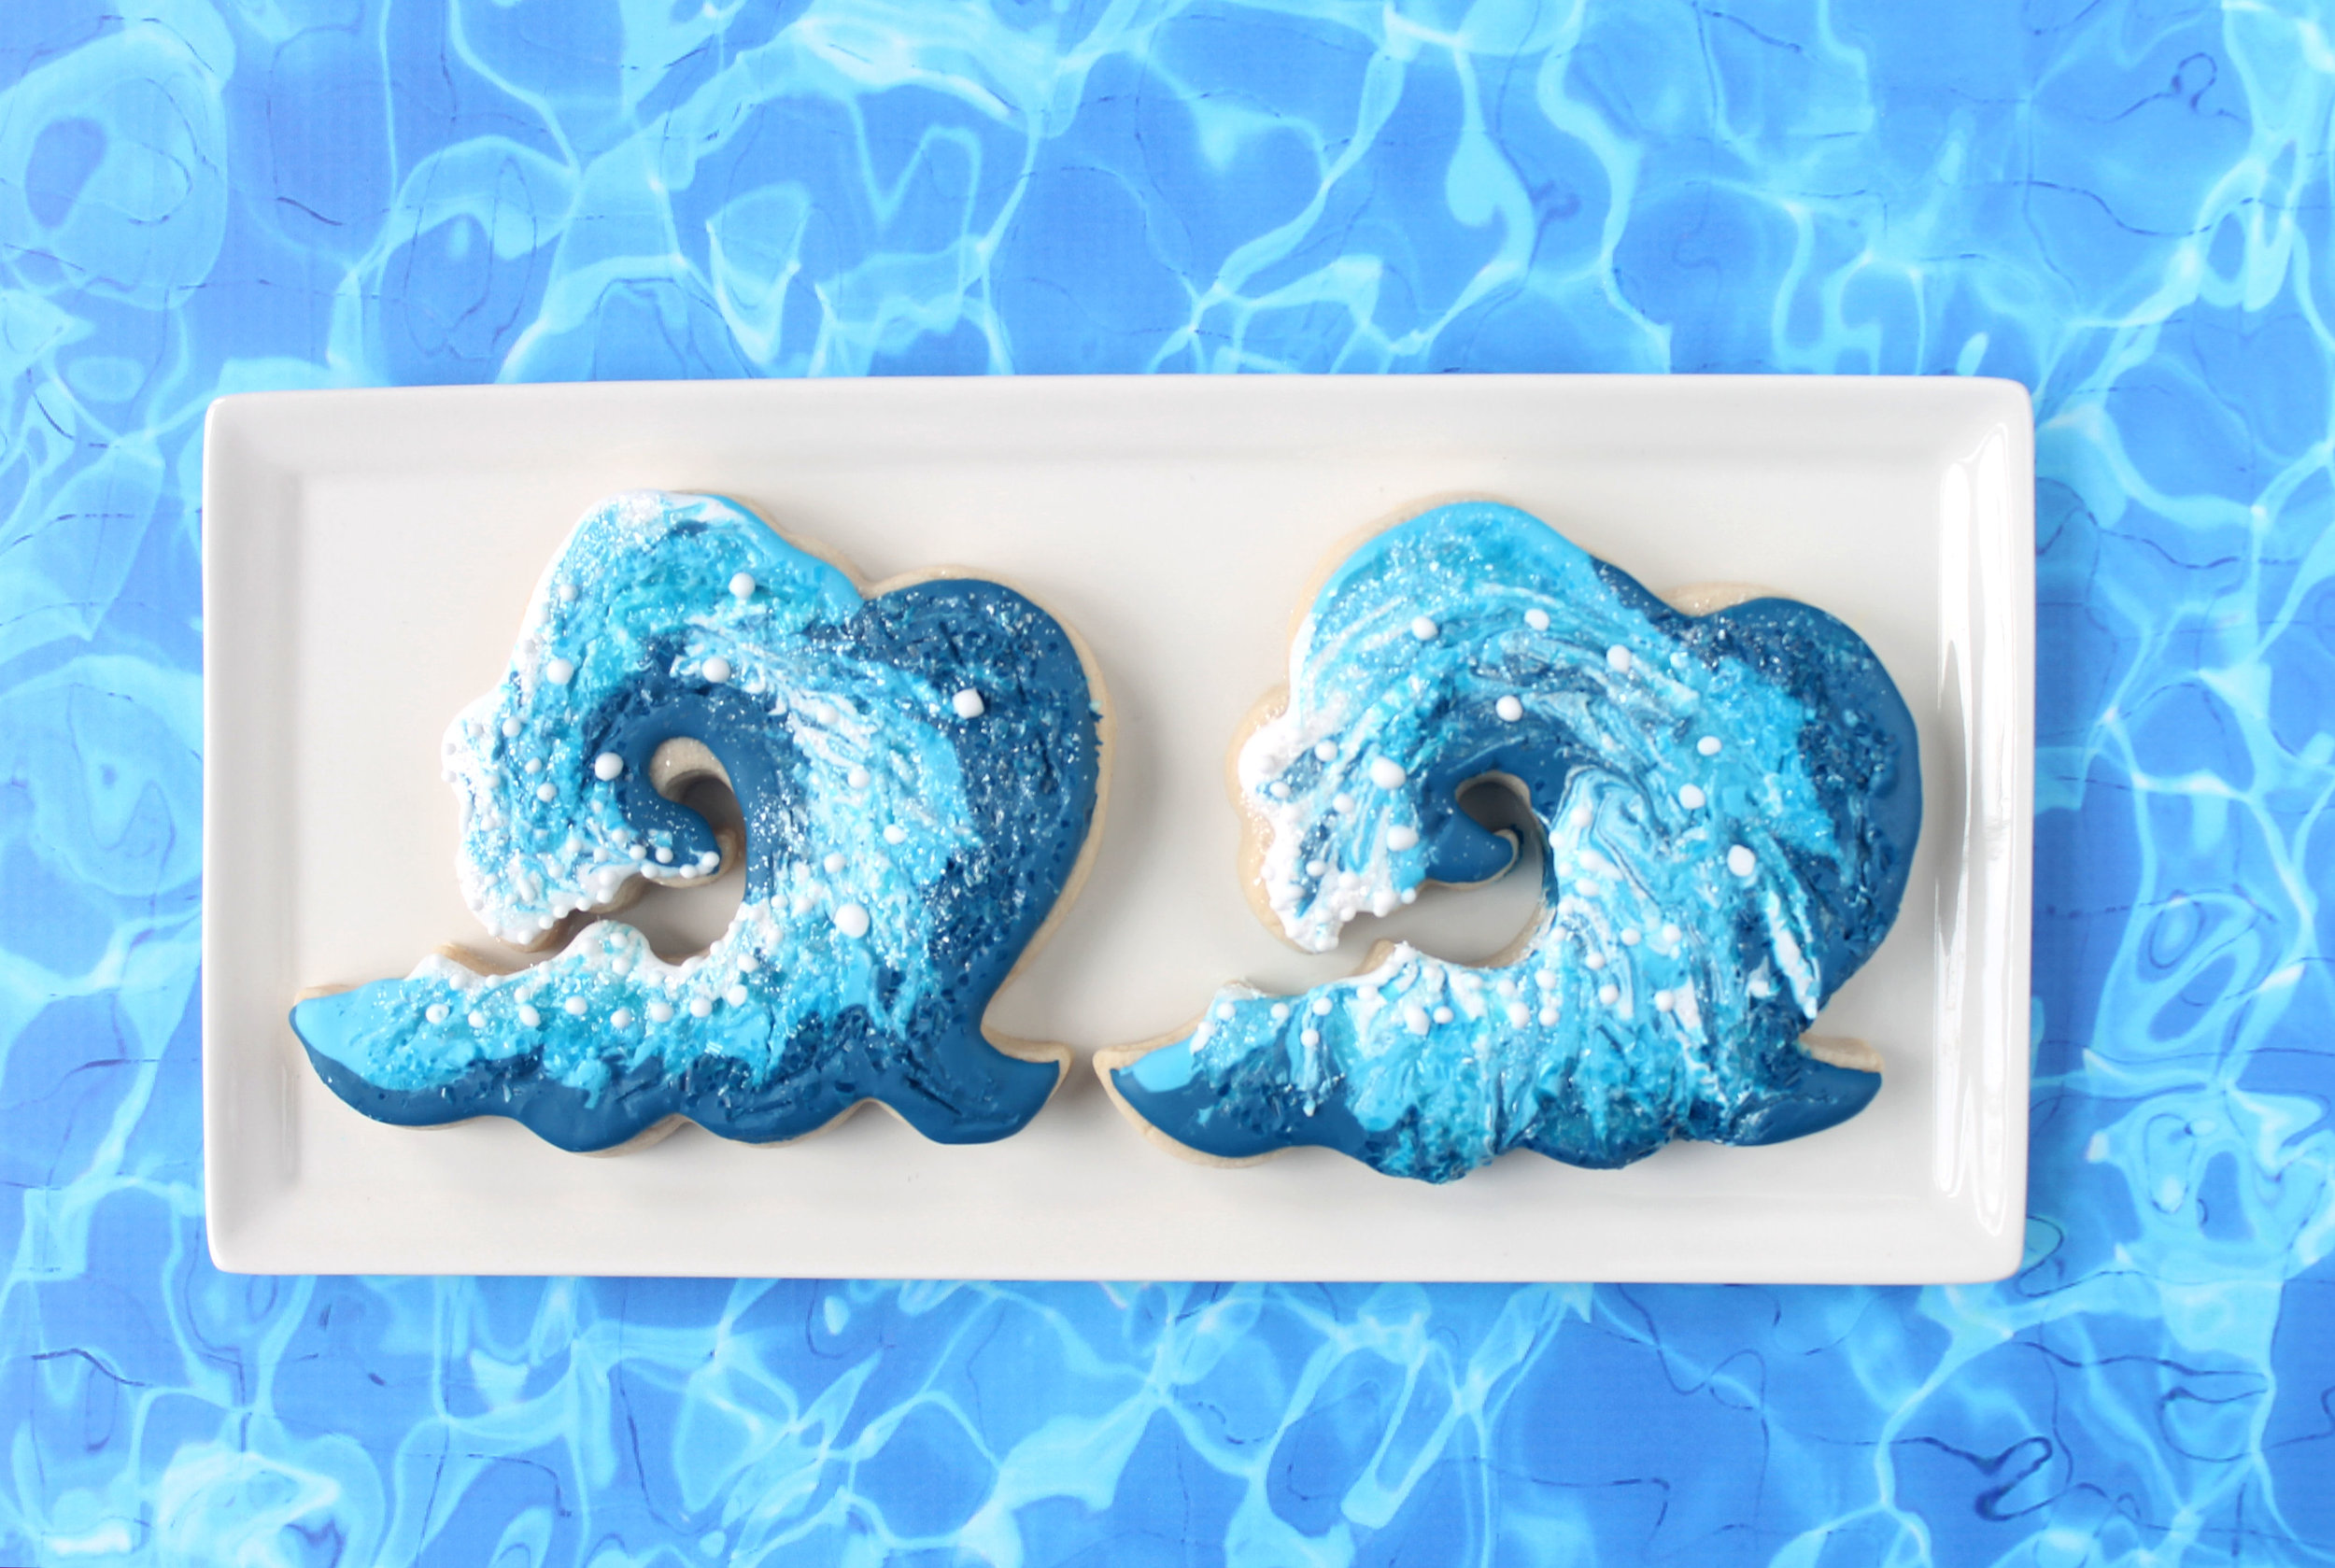 Ocean Wave Decorated Cookie YouTube Video